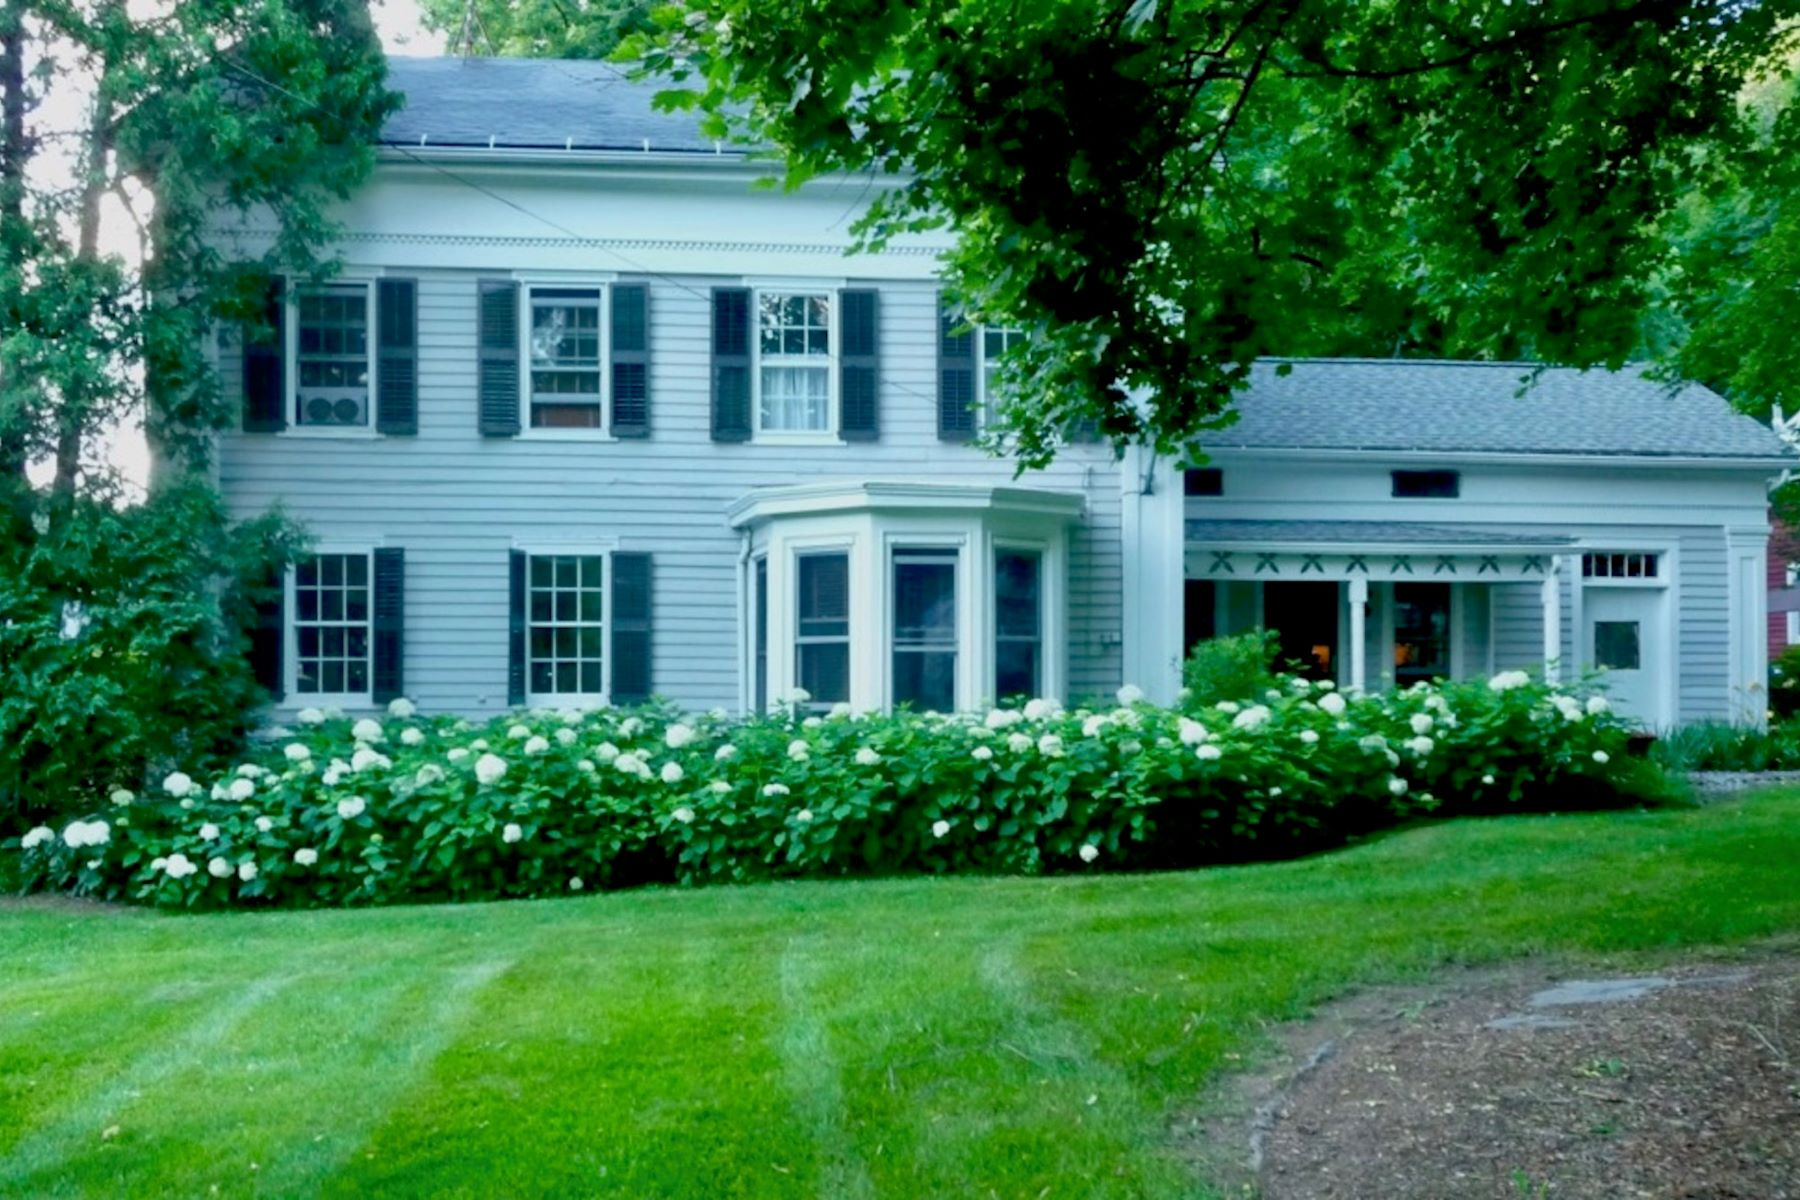 Single Family Homes for Sale at A Beautiful Country Colonial Greek Revival Home In The Heart of Village Living 824 Mill River Southfield Rd New Marlborough, Massachusetts 01230 United States